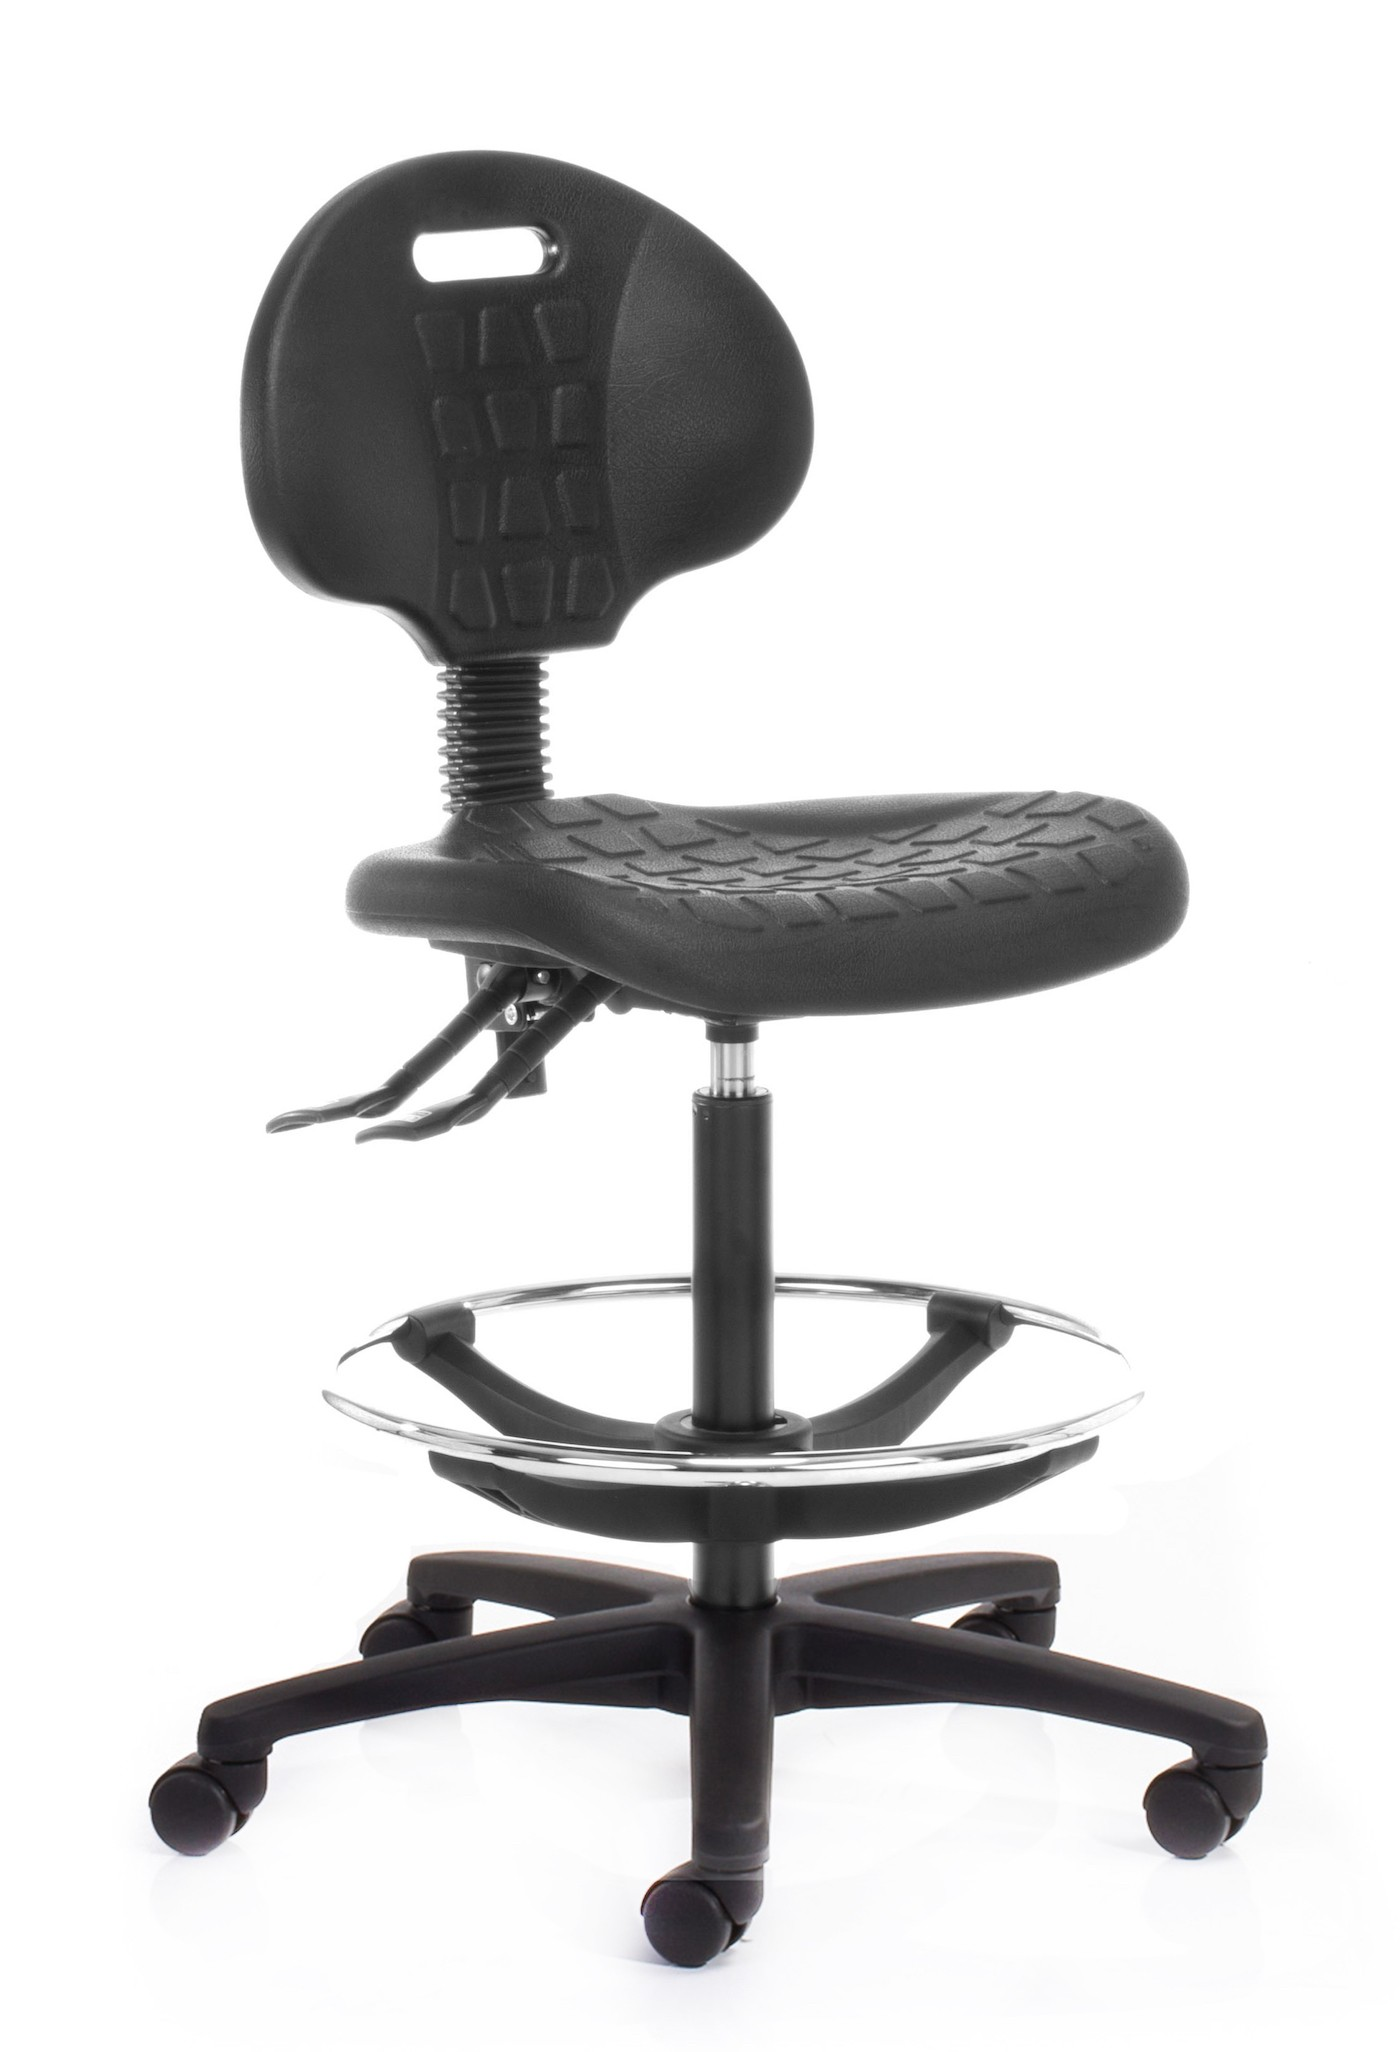 Lab Tech chair